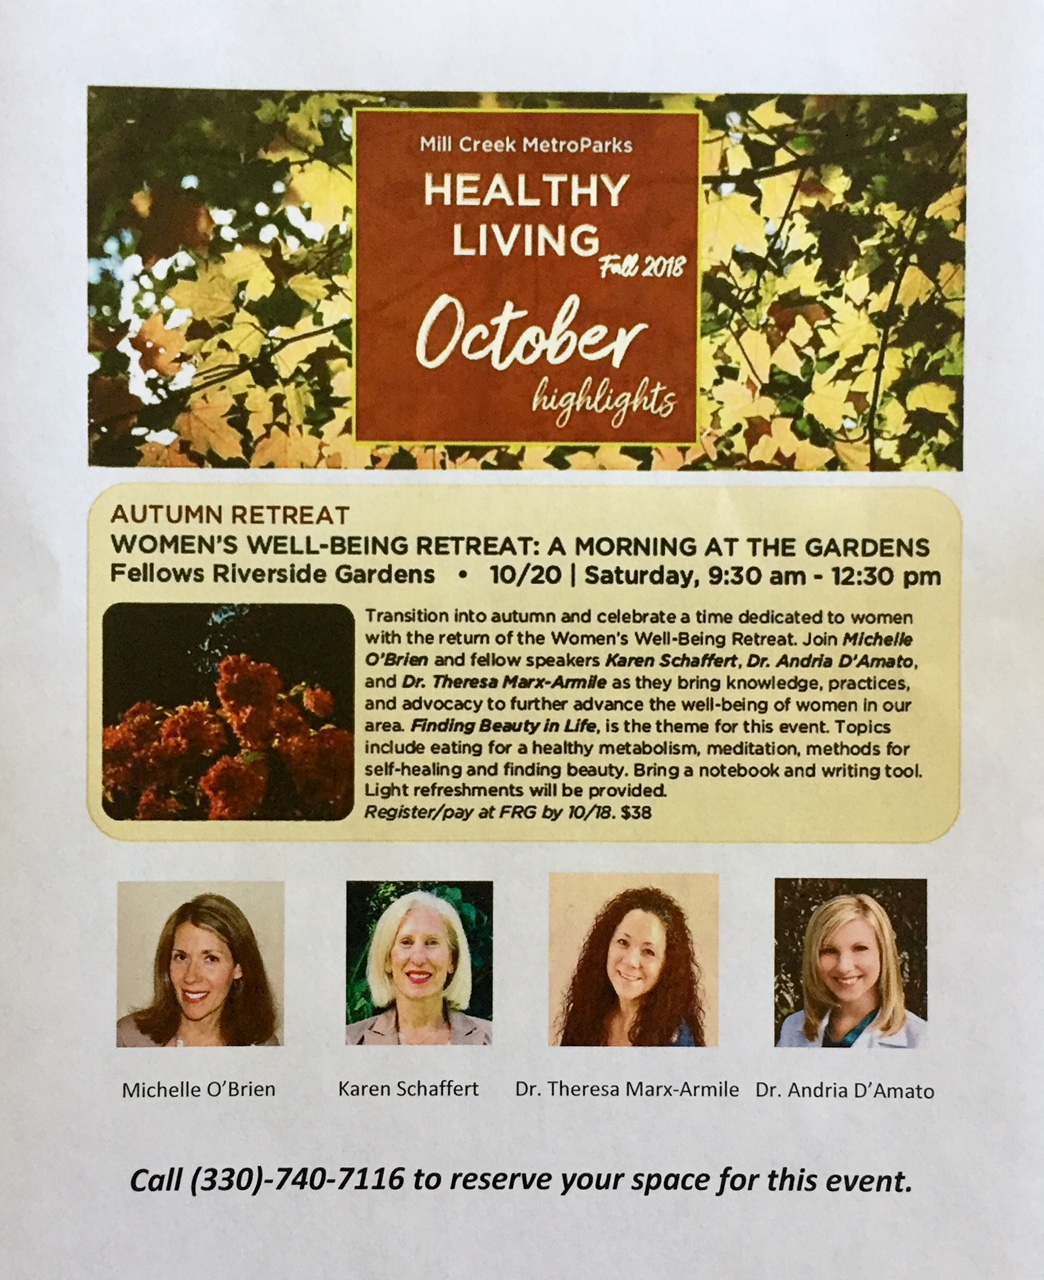 Flyer for Women's Well-Being Retreat in Mill Creek Park